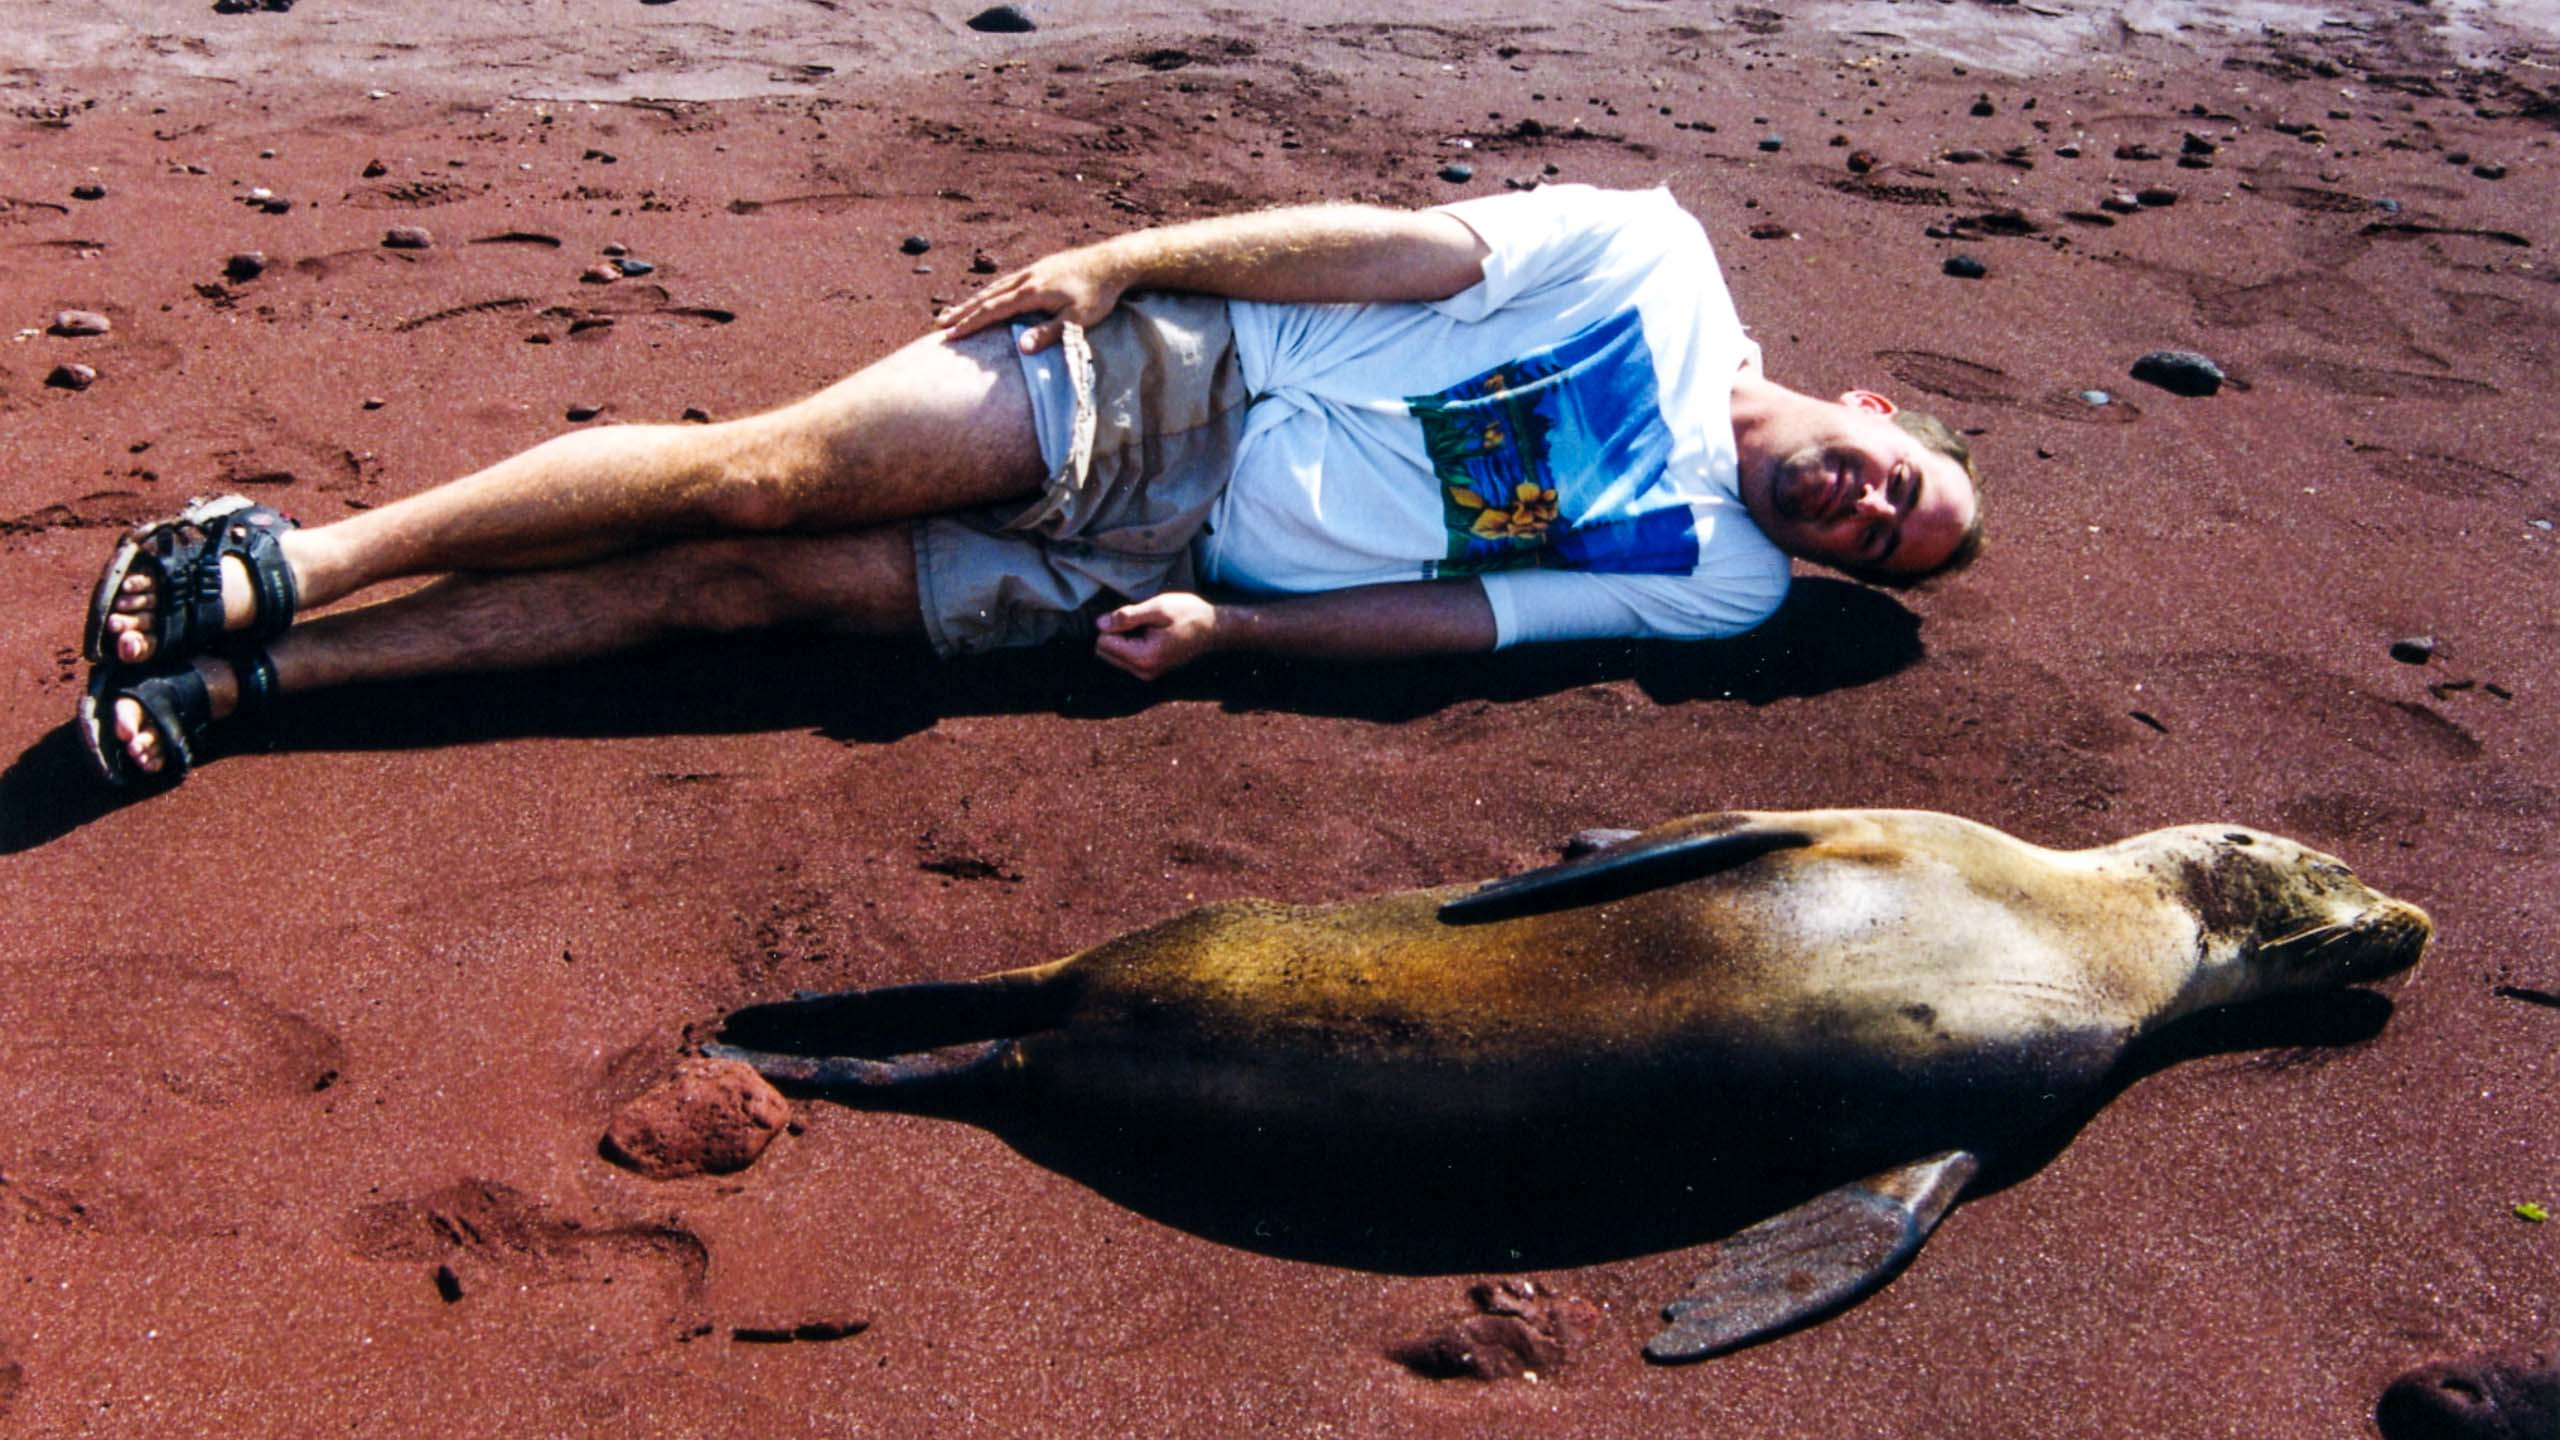 Traveler lies next to seal in Galapagos